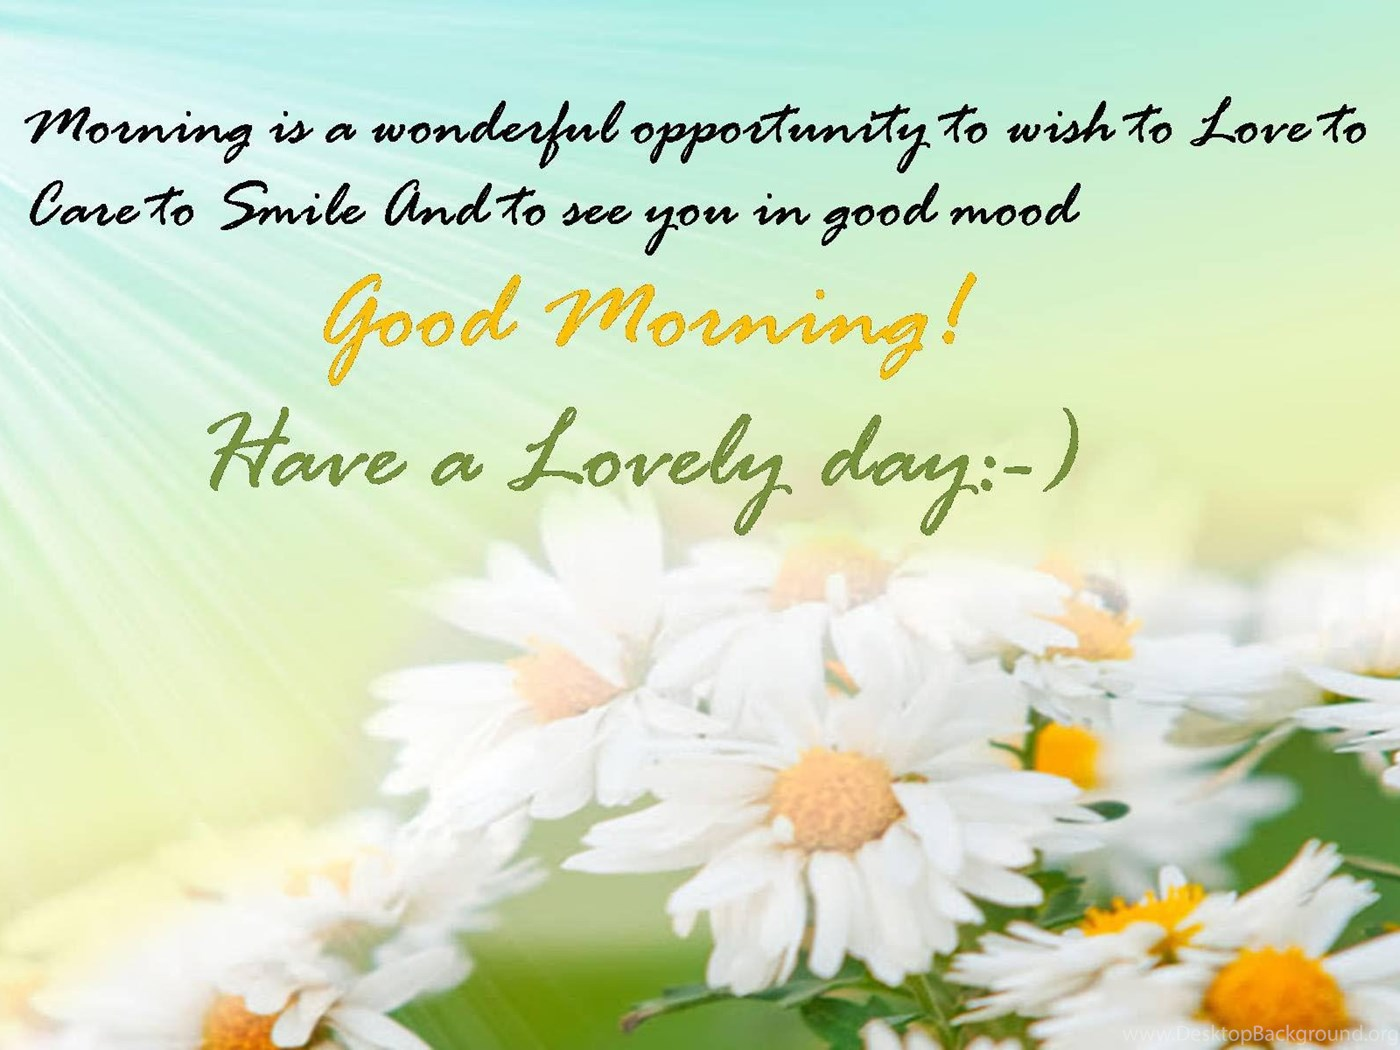 Good Morning Quotes Flower Wishes And Greetings Wallpapers Desktop